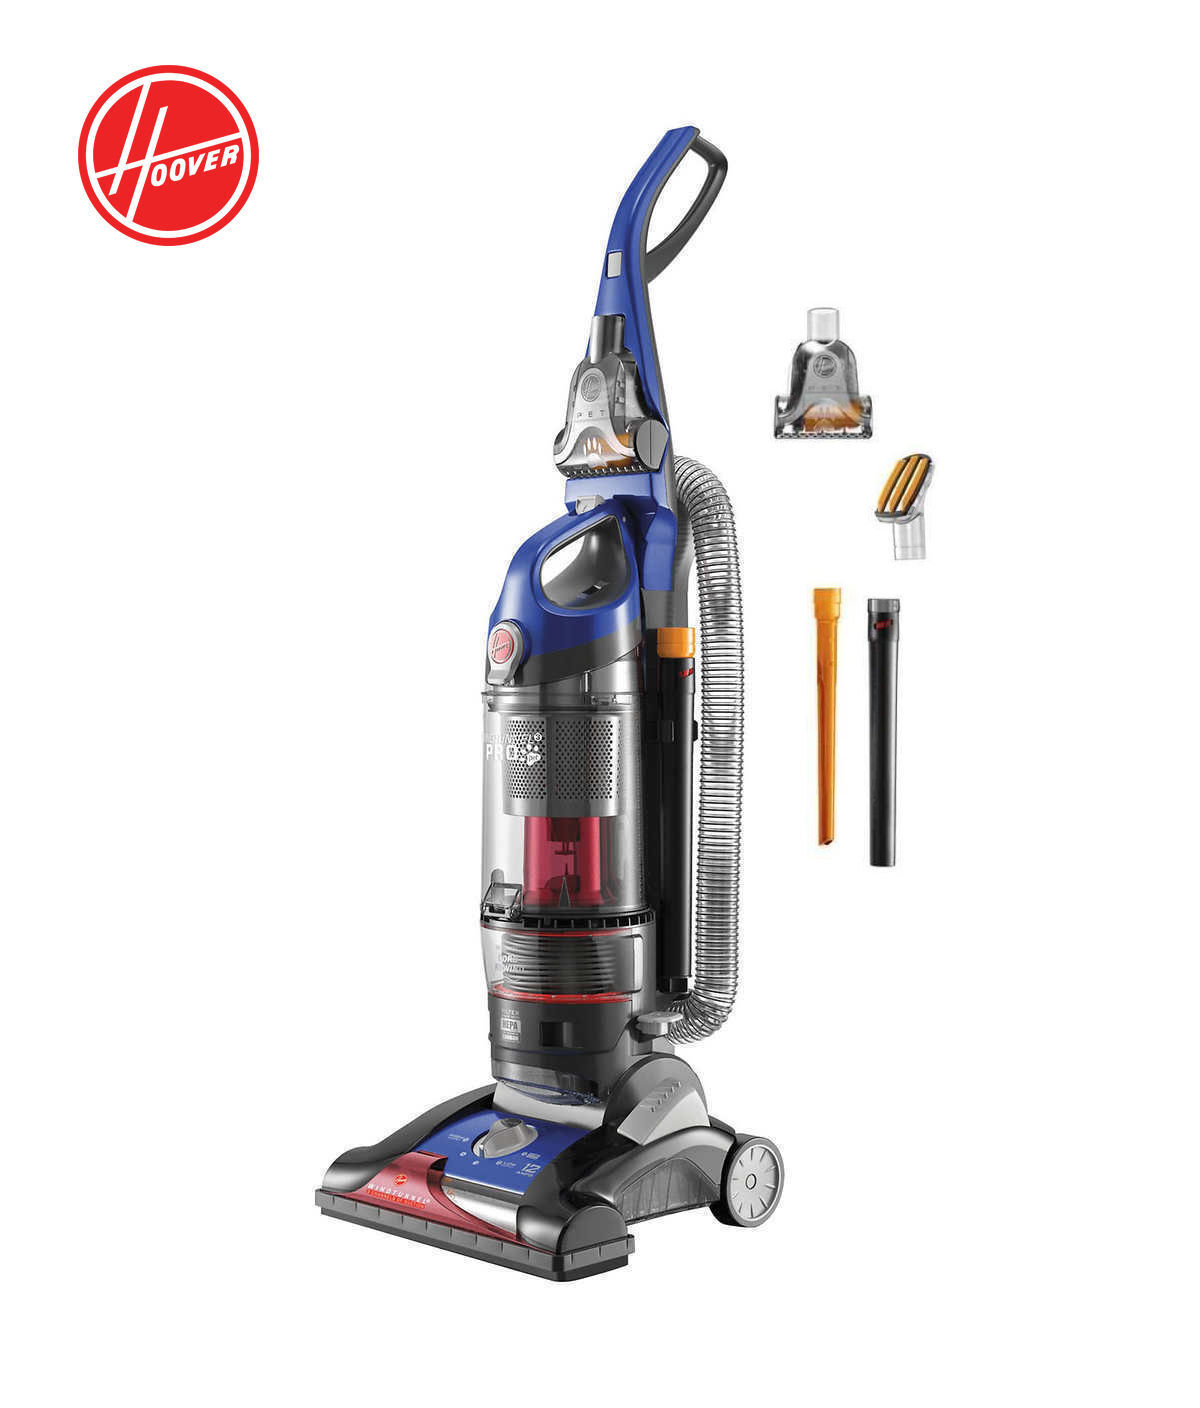 Hoover Windtunnel 3 Pro Pet Rewind Bagless Upright Vacuum Uh70937 2x Parts Diagram Bissell 1698 Powersteamer Proheat Deep Cleaner Stock Photo